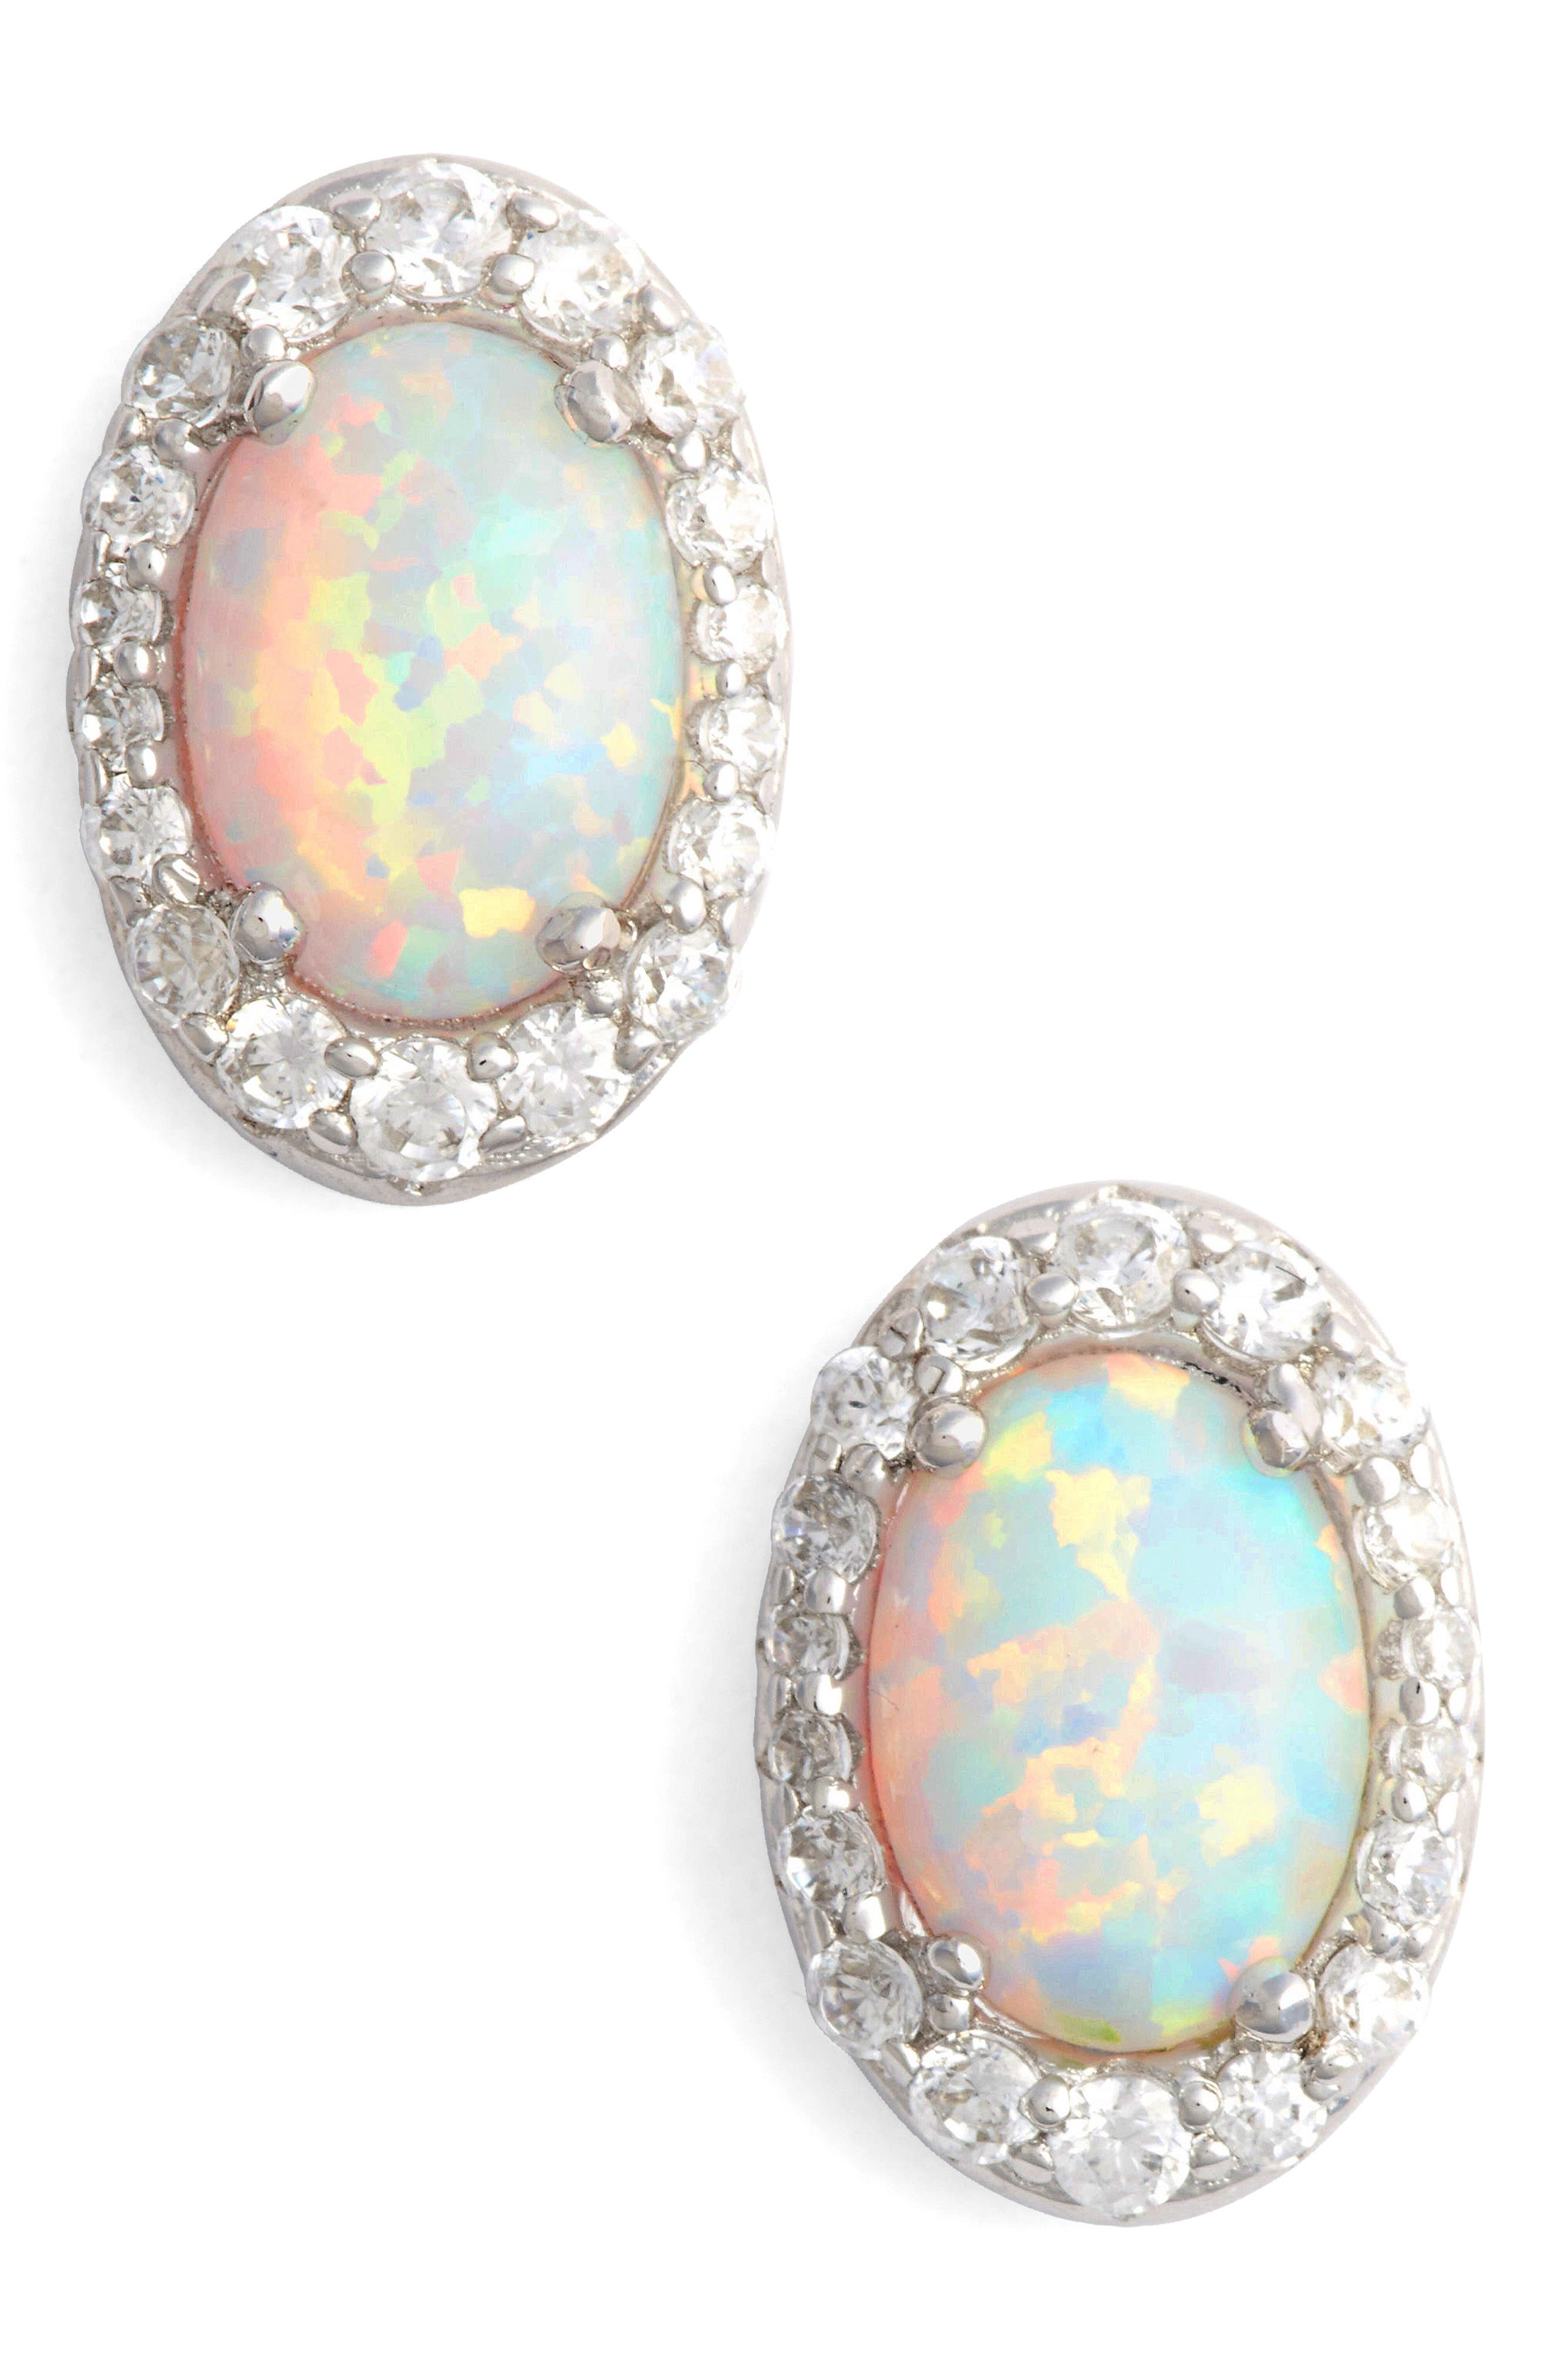 Simulated Opal Halo Stud Earrings,                             Main thumbnail 1, color,                             Silver/ Opal/ Clear